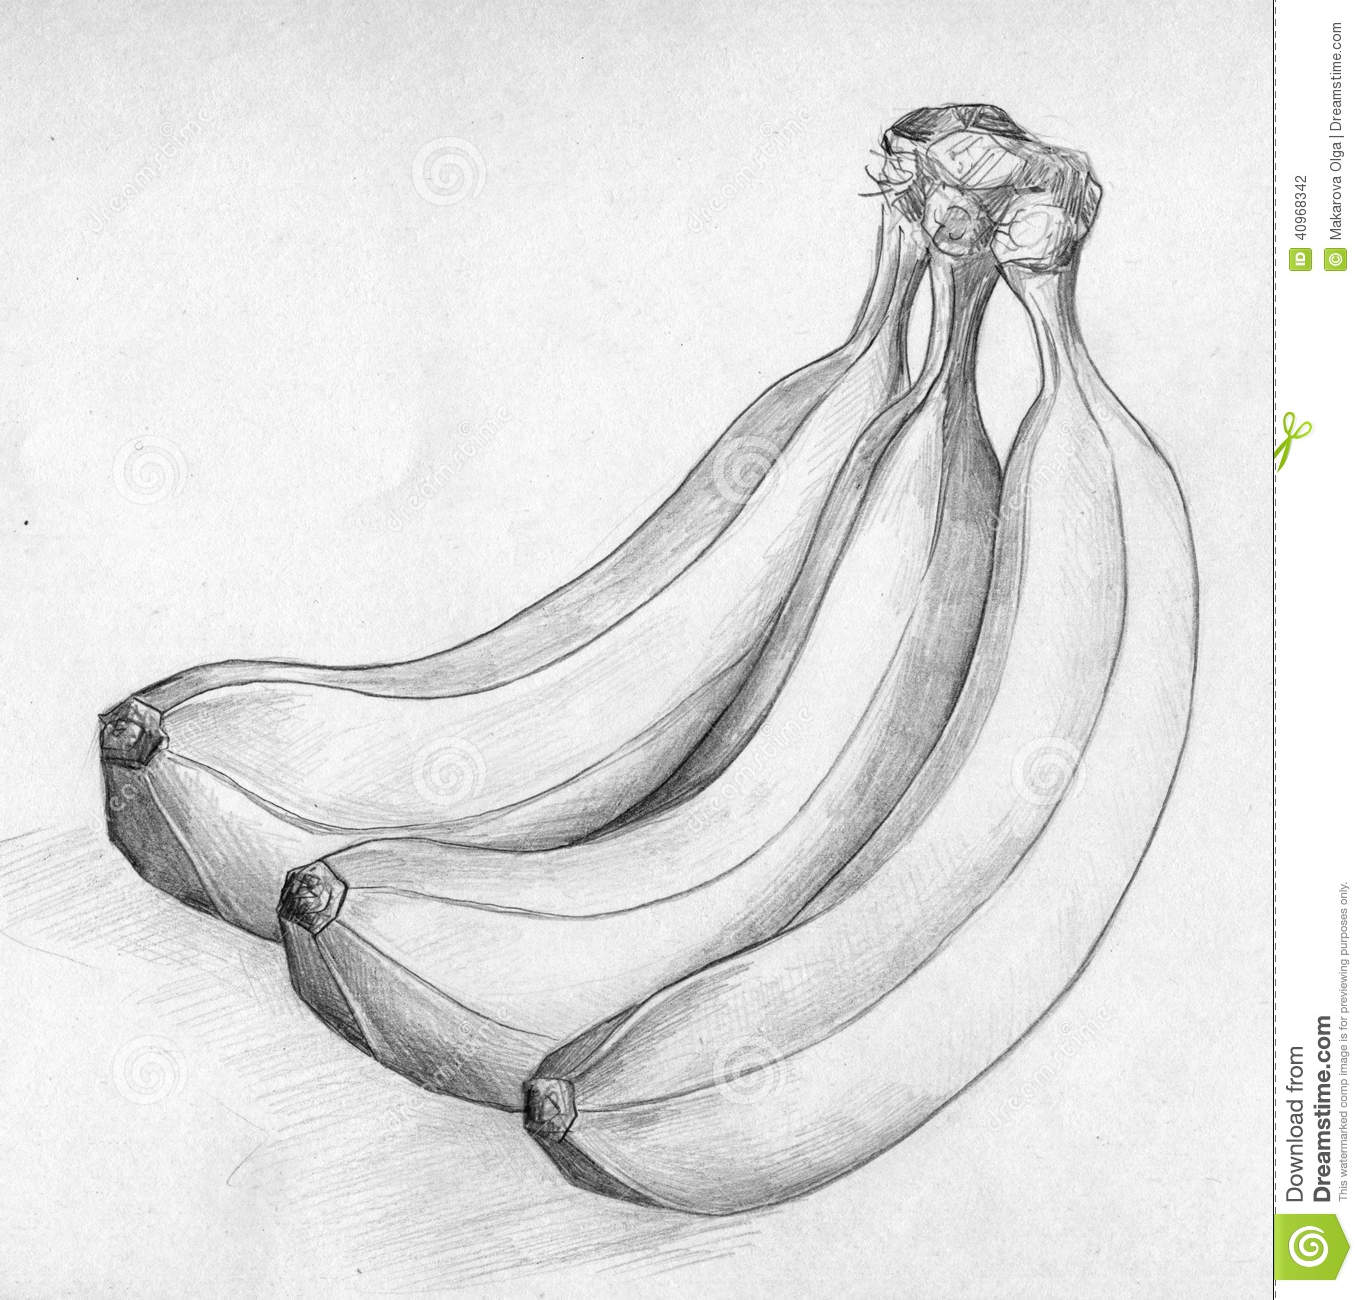 Banana Sketch Stock Illustration Image 40968342